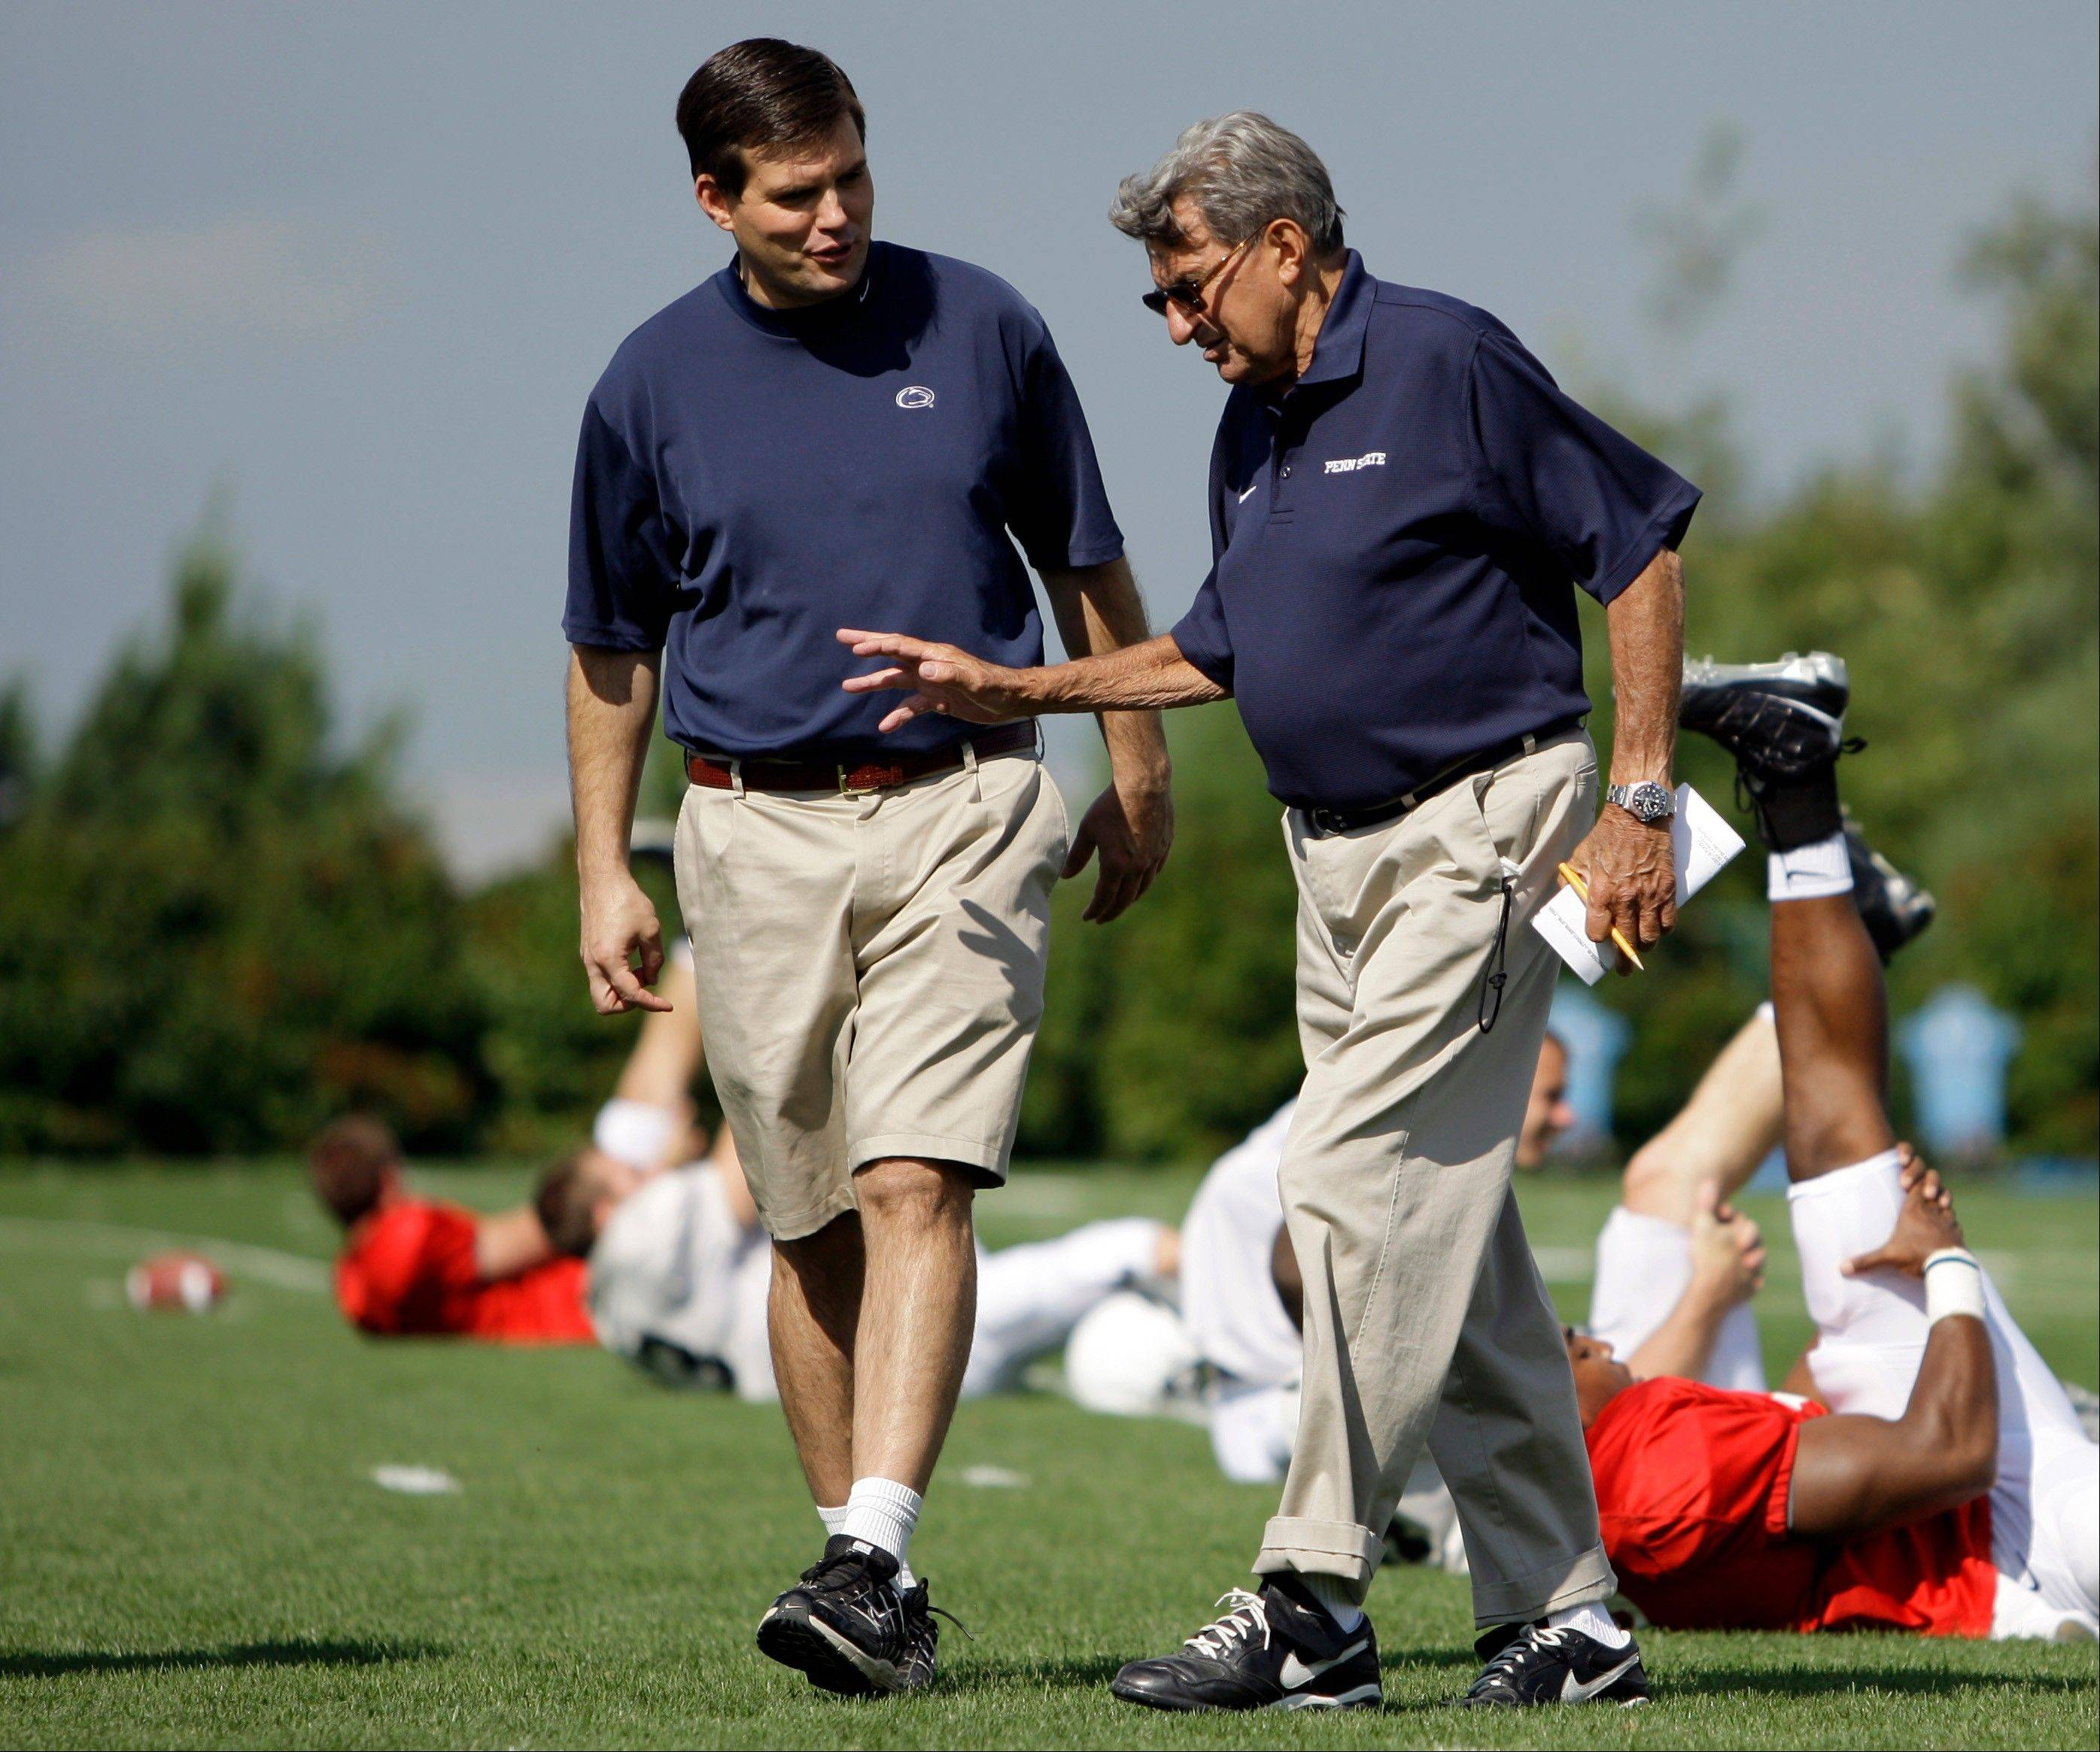 Penn State football coach Joe Paterno, right, walks with his son Jay Paterno, who was the team's quarterbacks coach, as players stretch out during a 2008 practice in State College, Pa. A new era is dawning at Penn State, with a new football coach and a new look to the uniforms. But no Paterno on the sideline in a season opener for the first time since 1965.